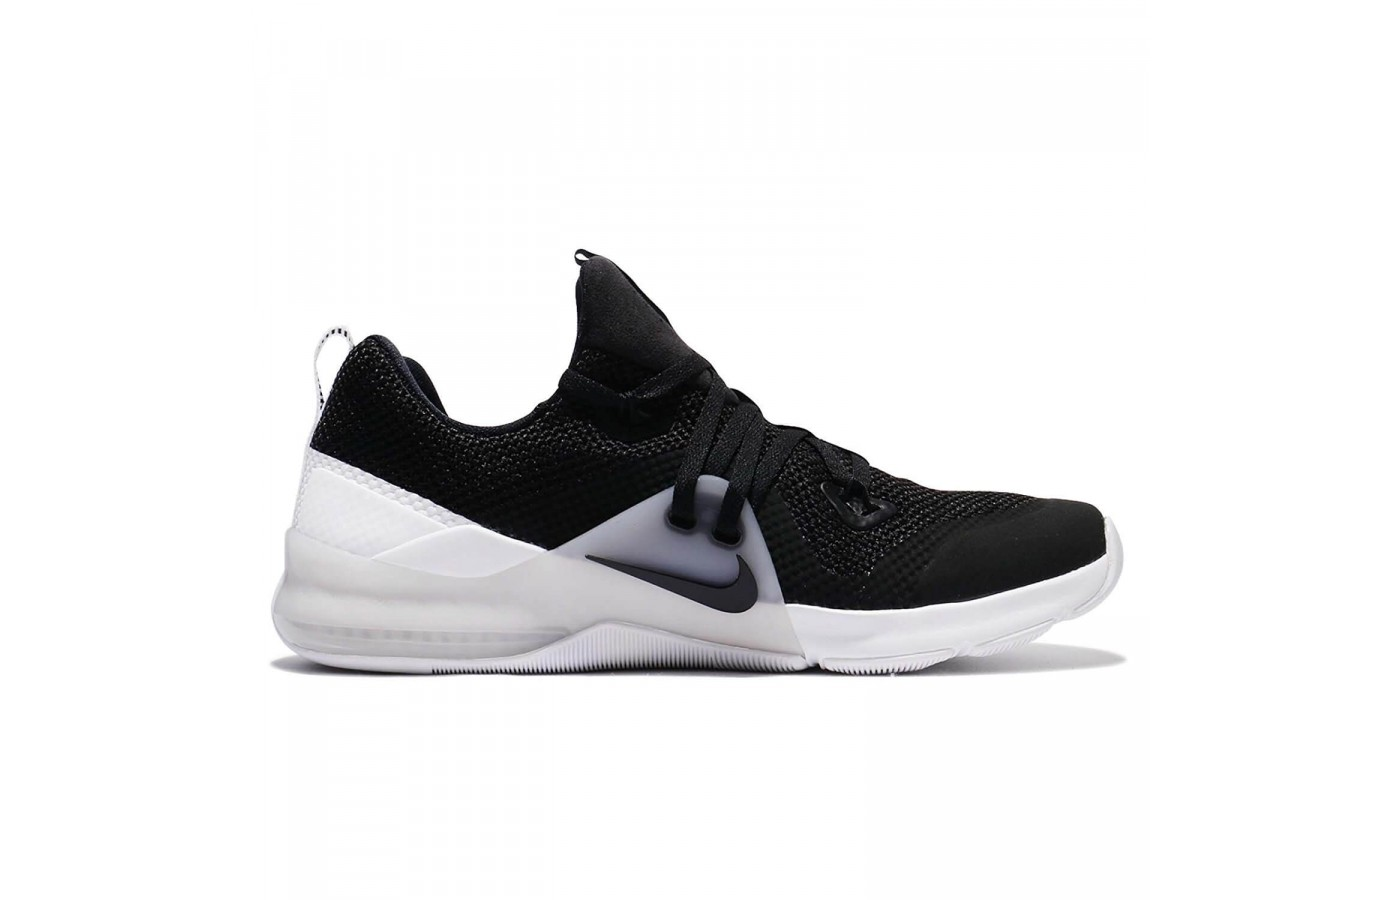 Nike Zoom Train Command. Runners love the traditional Nike Zoom cushioning  in the midsole  The flywire cables attached to the lacing system add  support. 15617c756